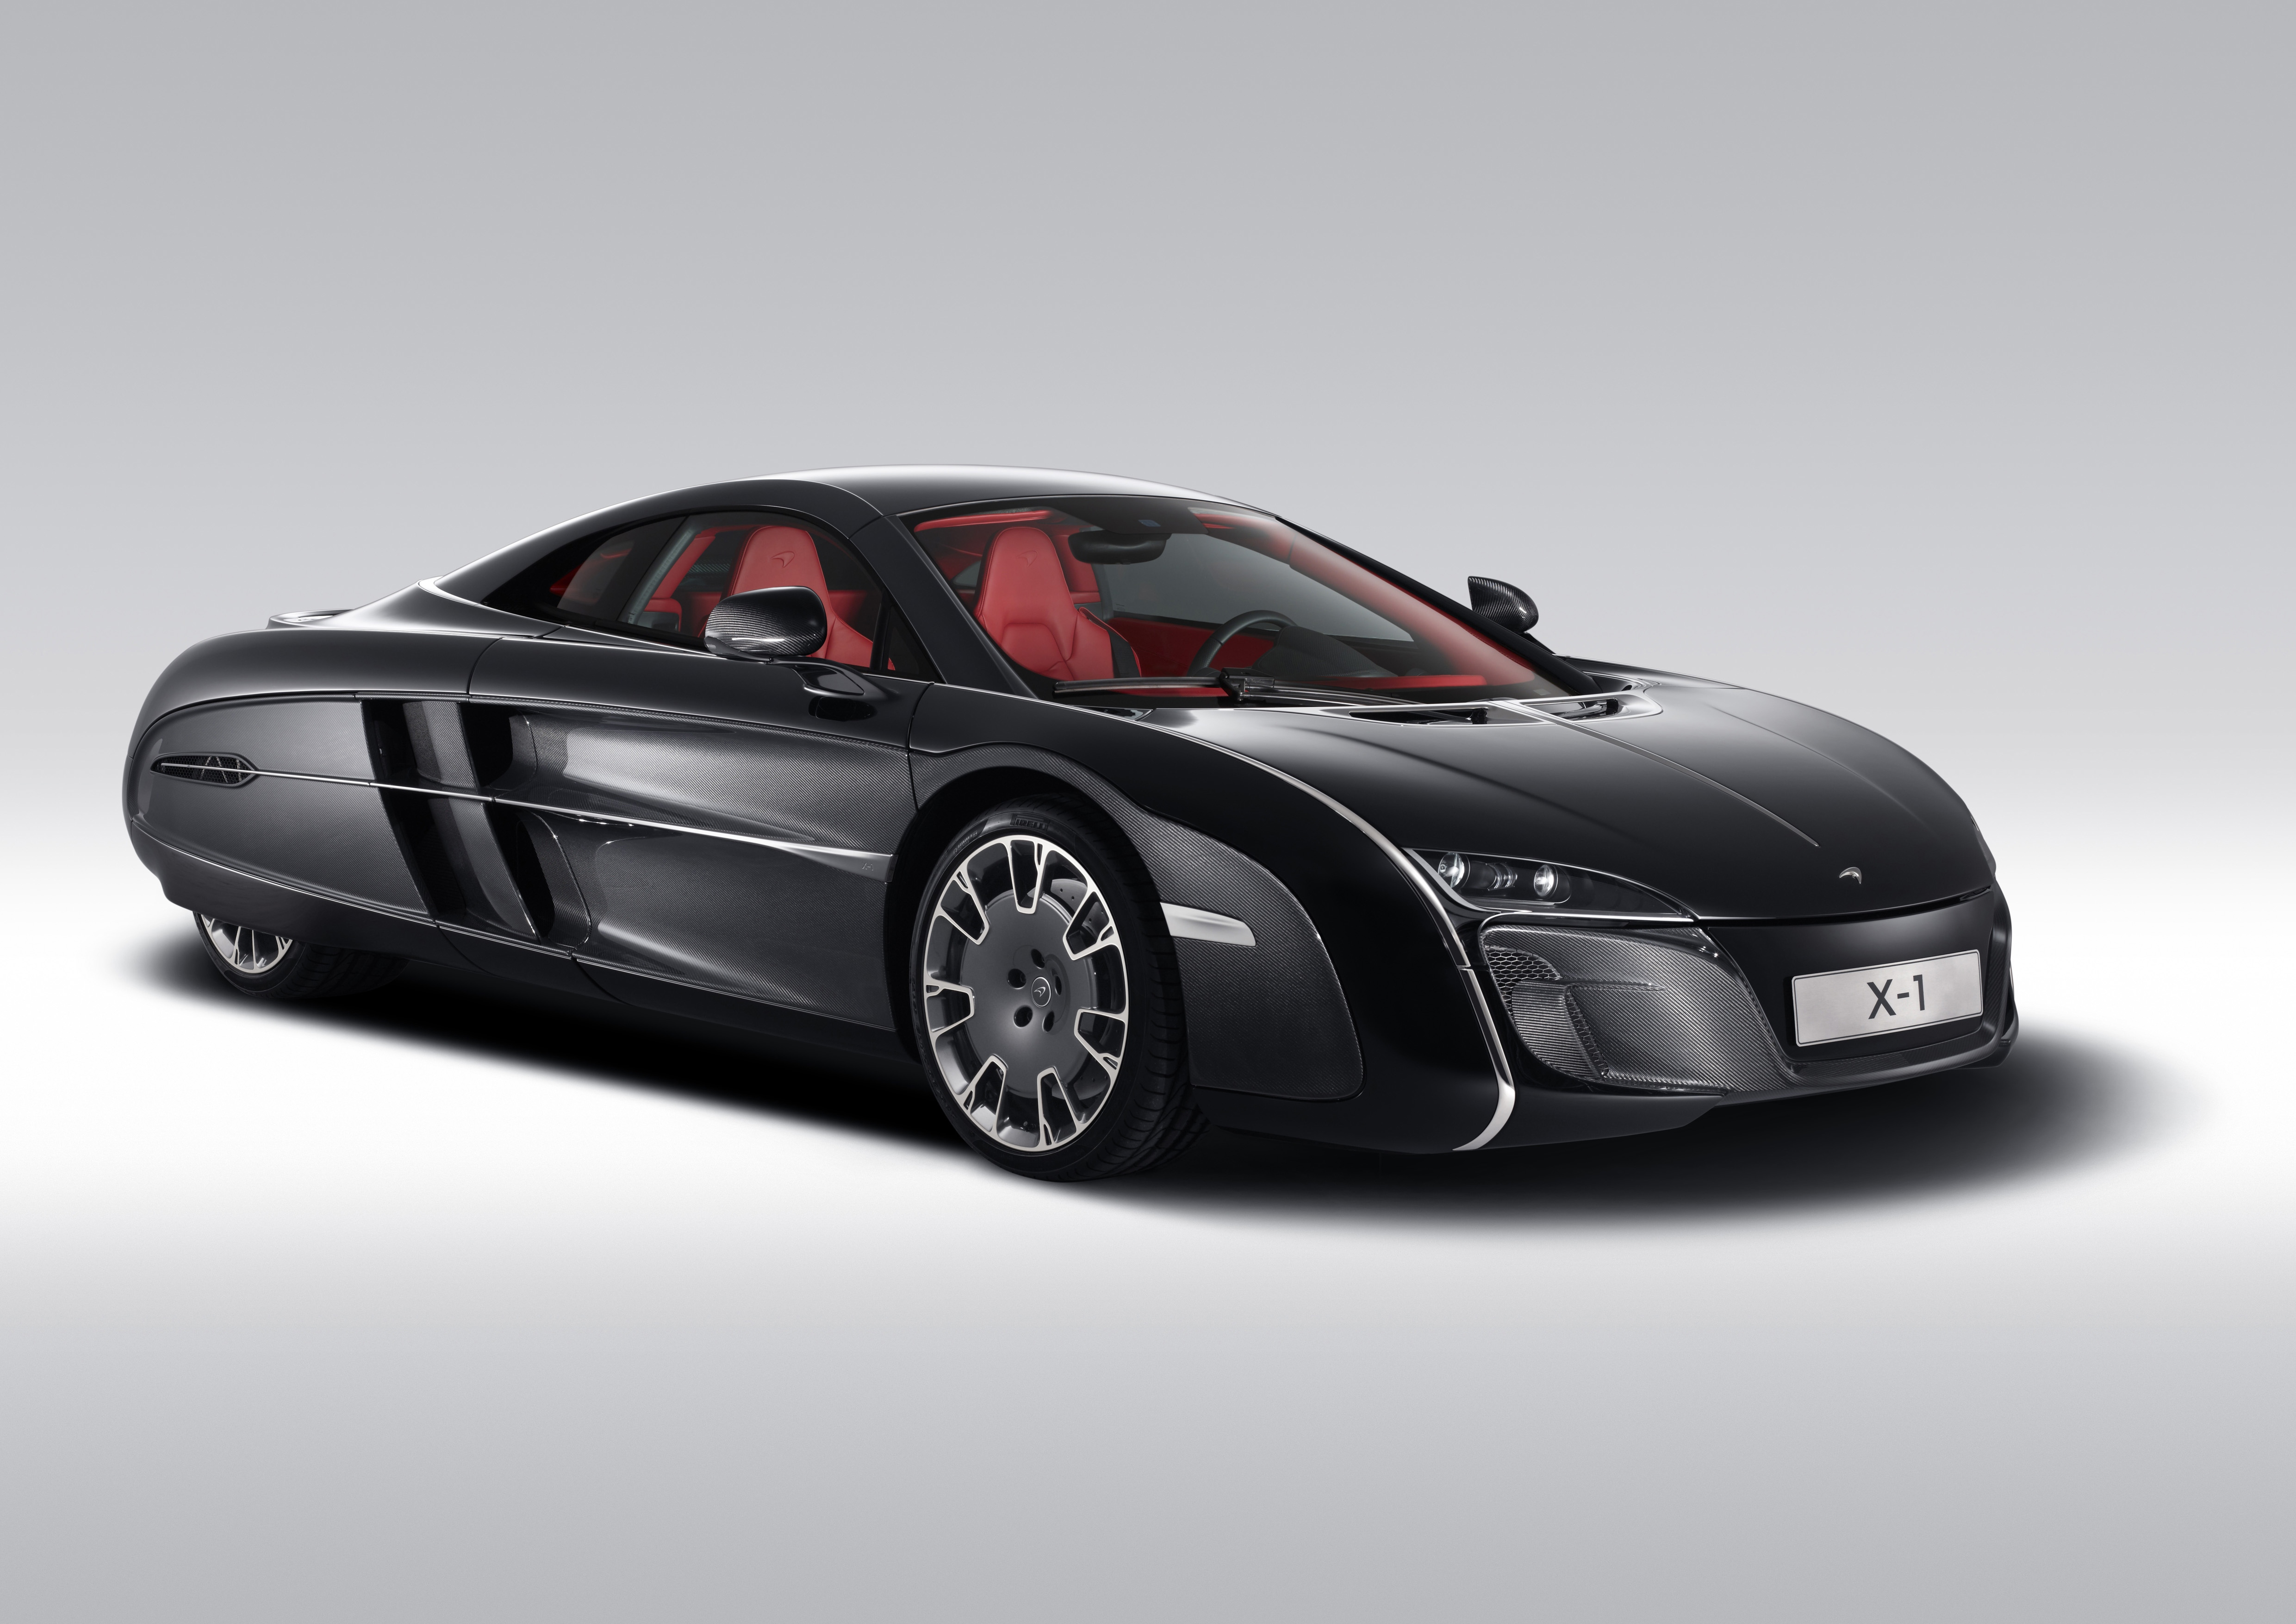 Mclaren X 1 >> 2013 Mclaren X 1 Top Speed